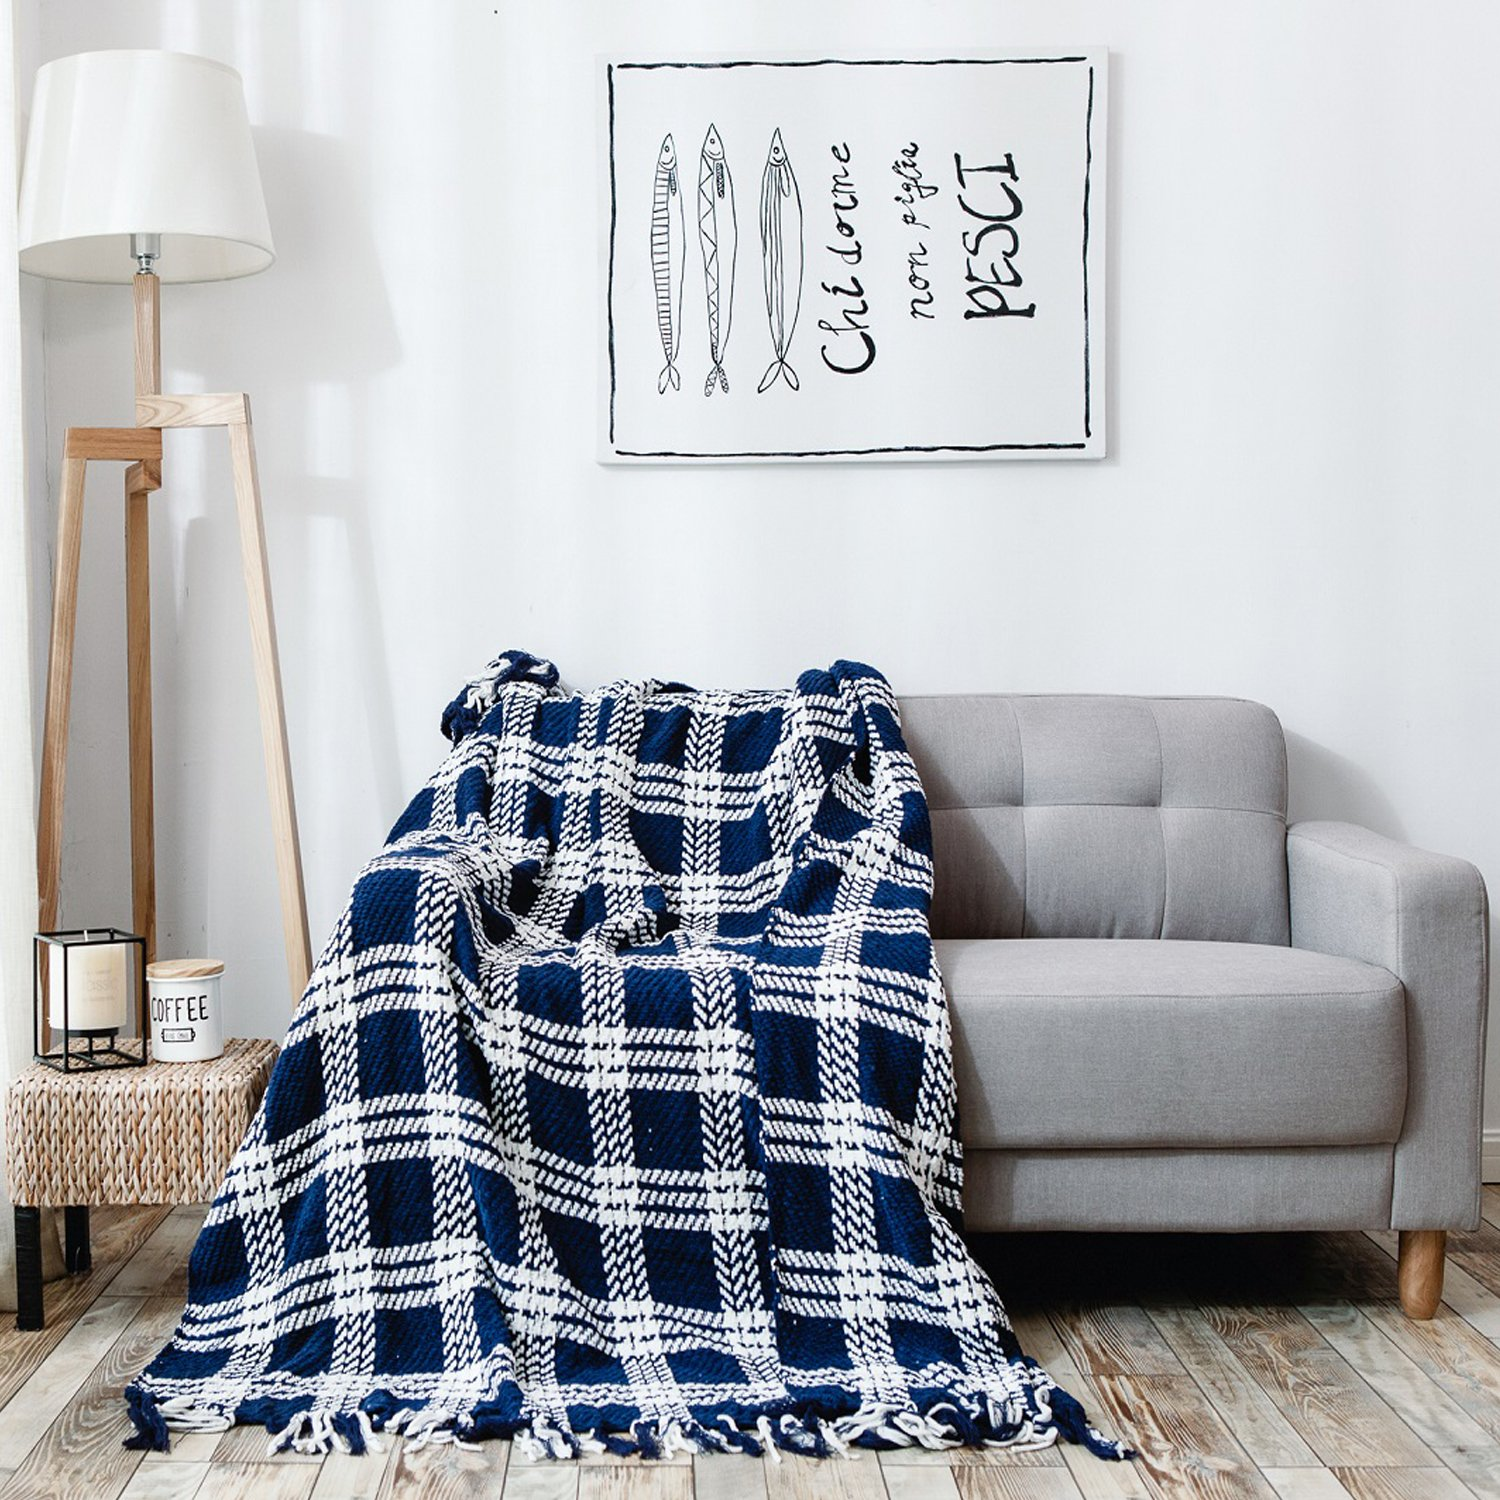 Amazon.com: HollyHOME Throw Blanket Plaid Stripe Knitting 60x70 ...